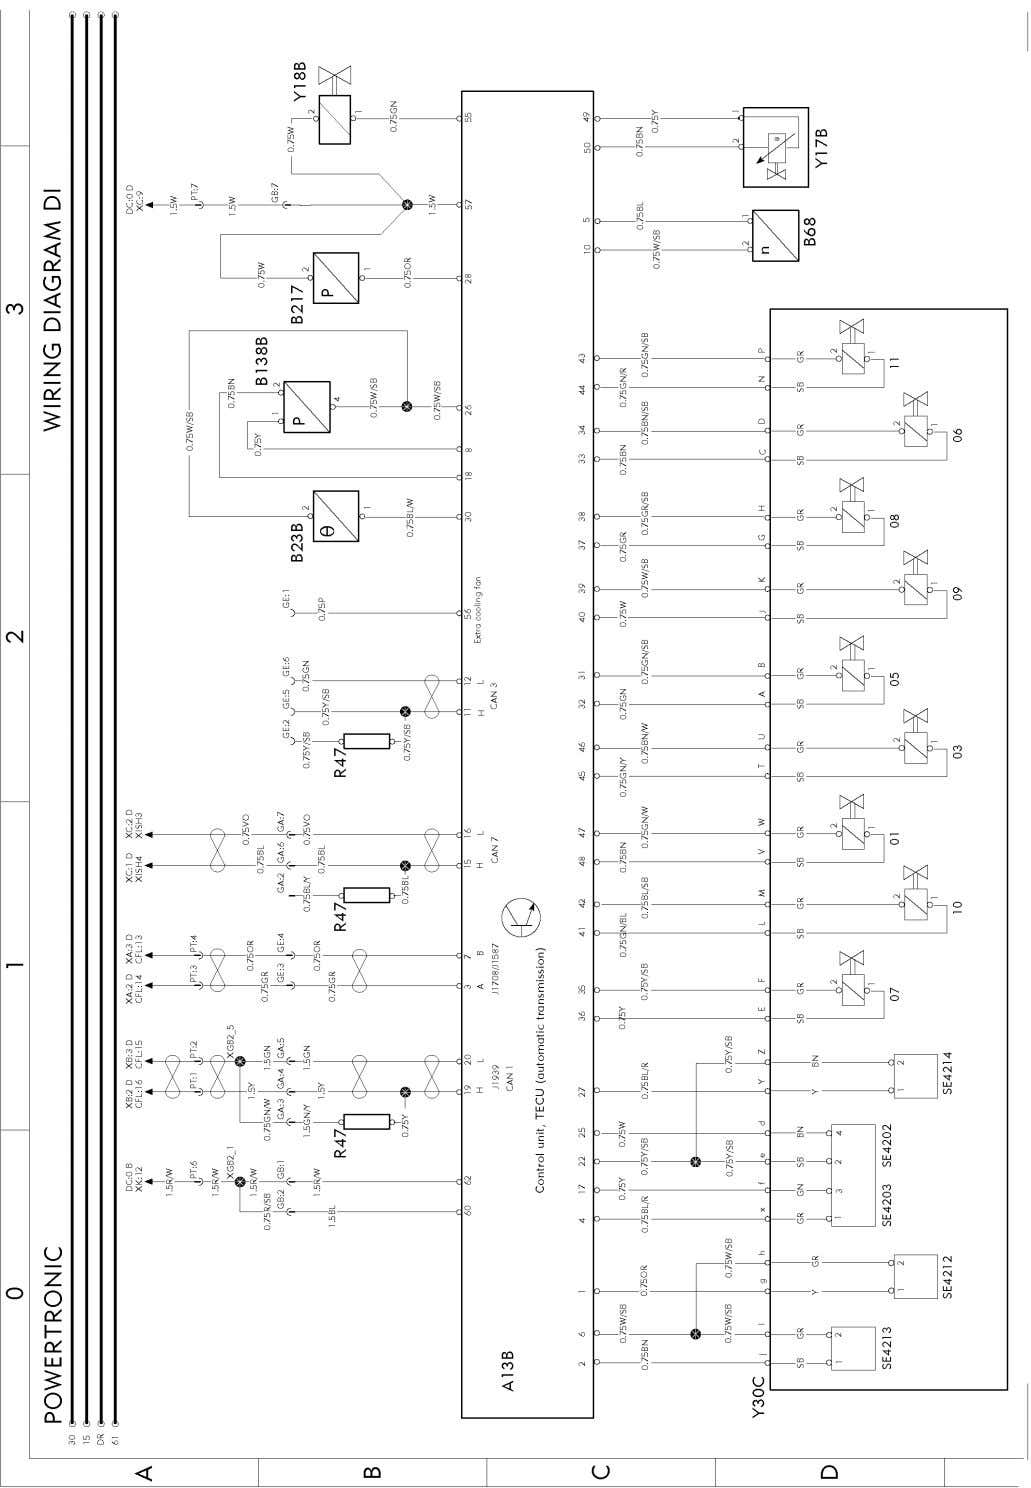 T3028723 Wiring diagram Page 35 (298)